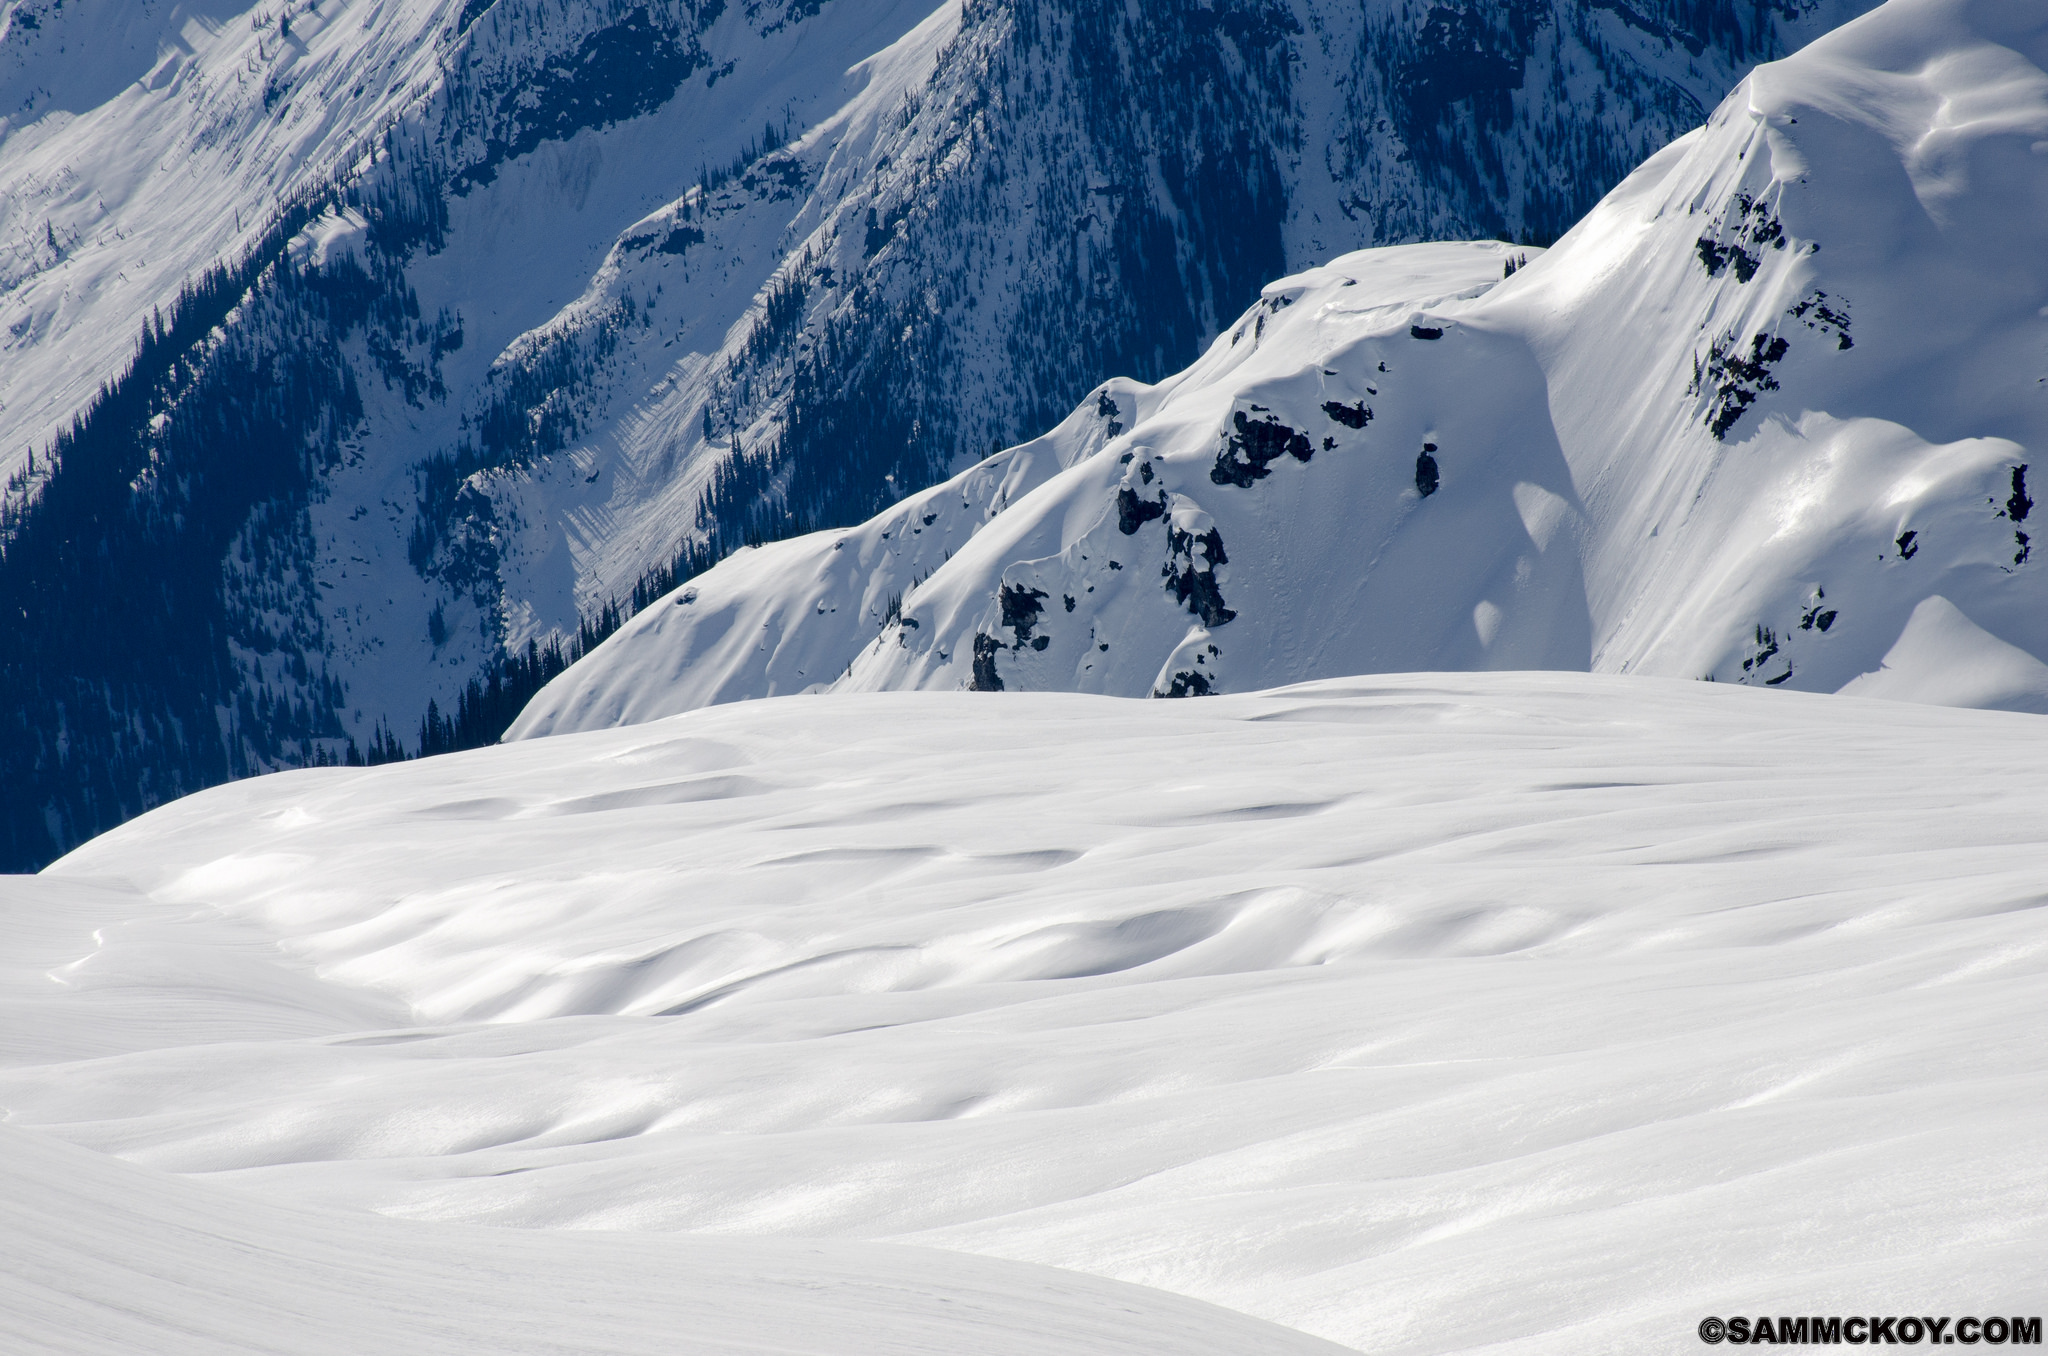 Sagging crevasses and wind formations on a glacier.